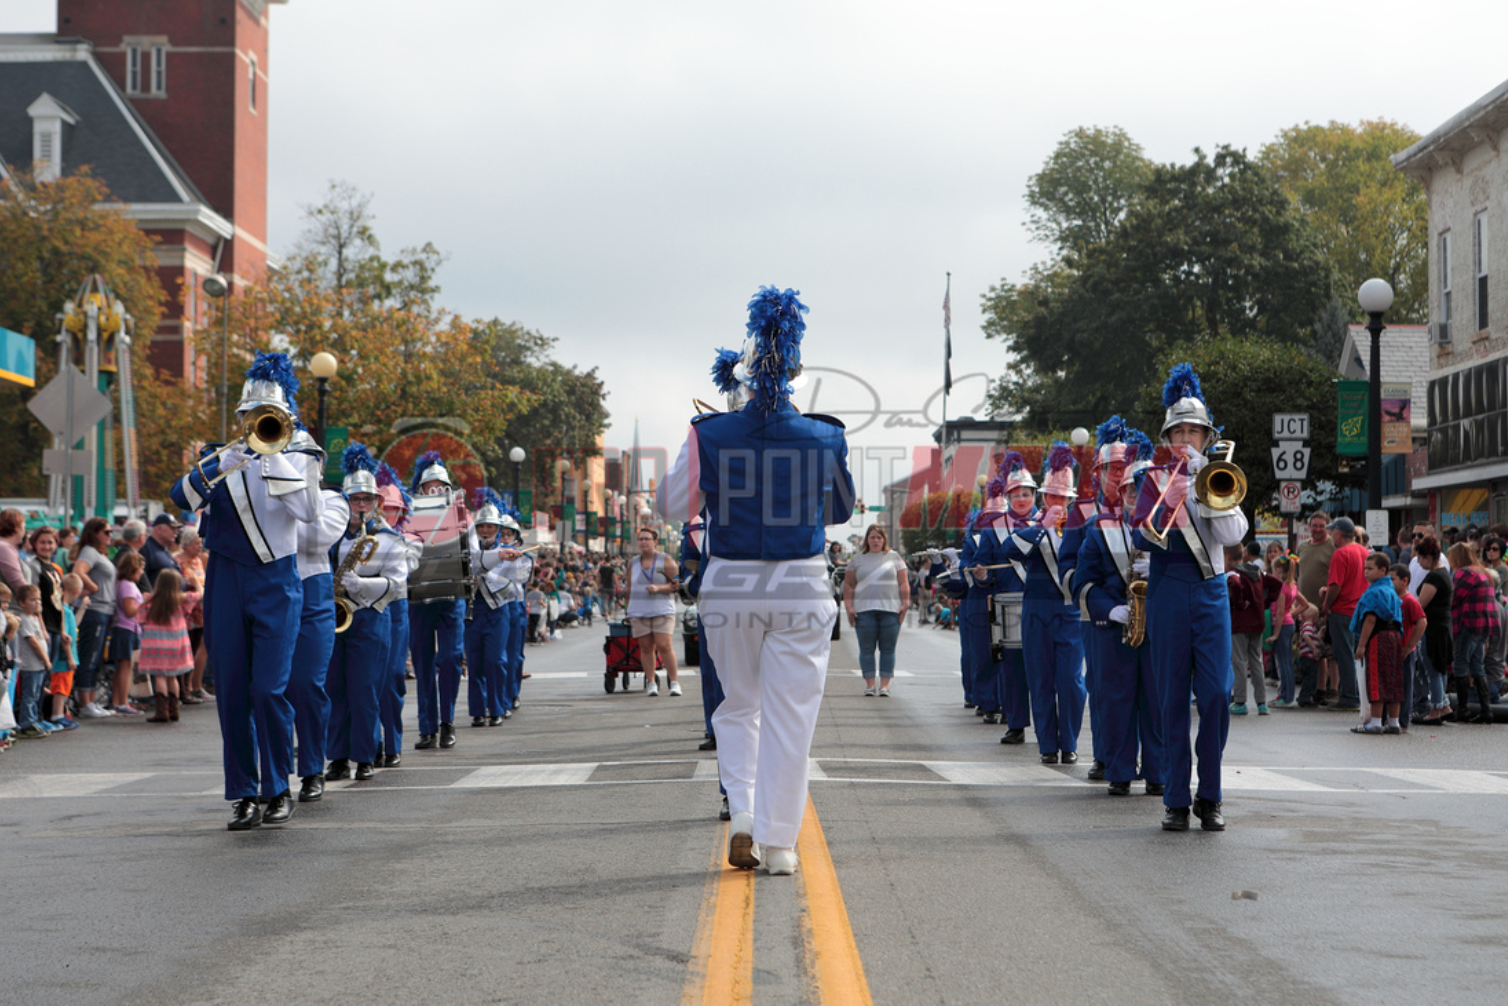 Clarion Hospital Tournament of Leaves Parade Results